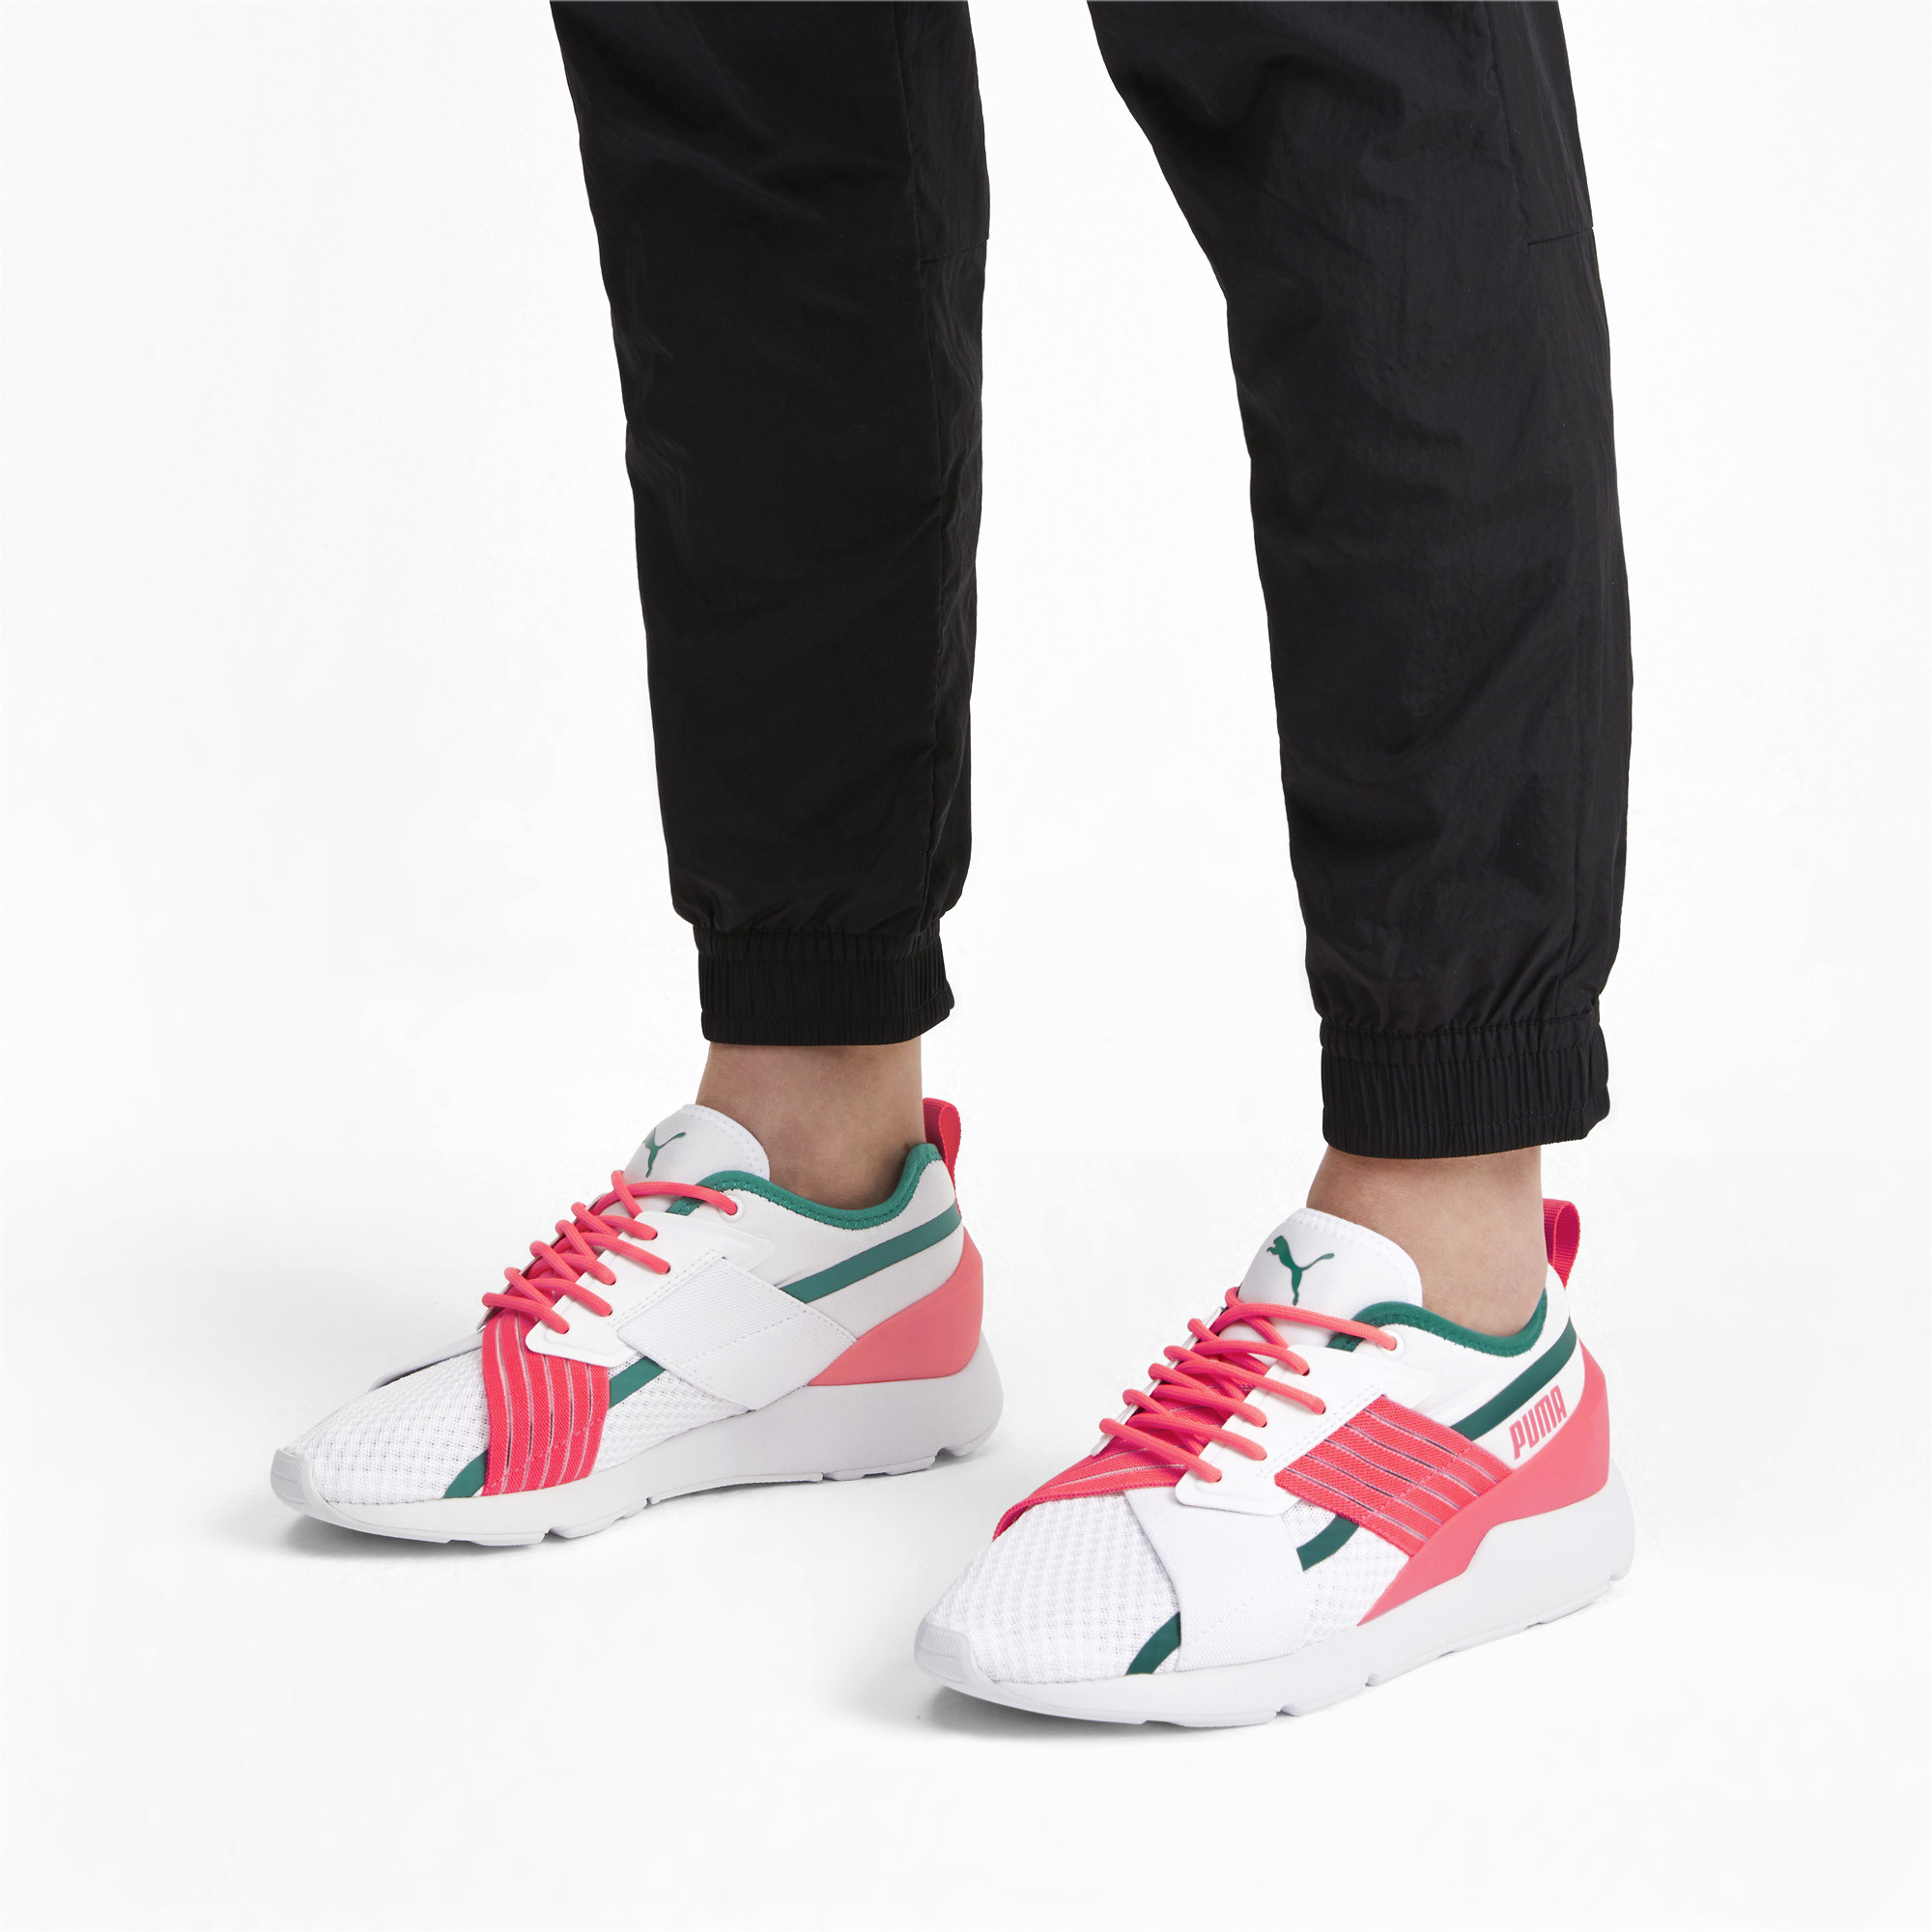 PUMA-Muse-X-2-Women-039-s-Sneakers-Women-Shoe-Evolution thumbnail 5